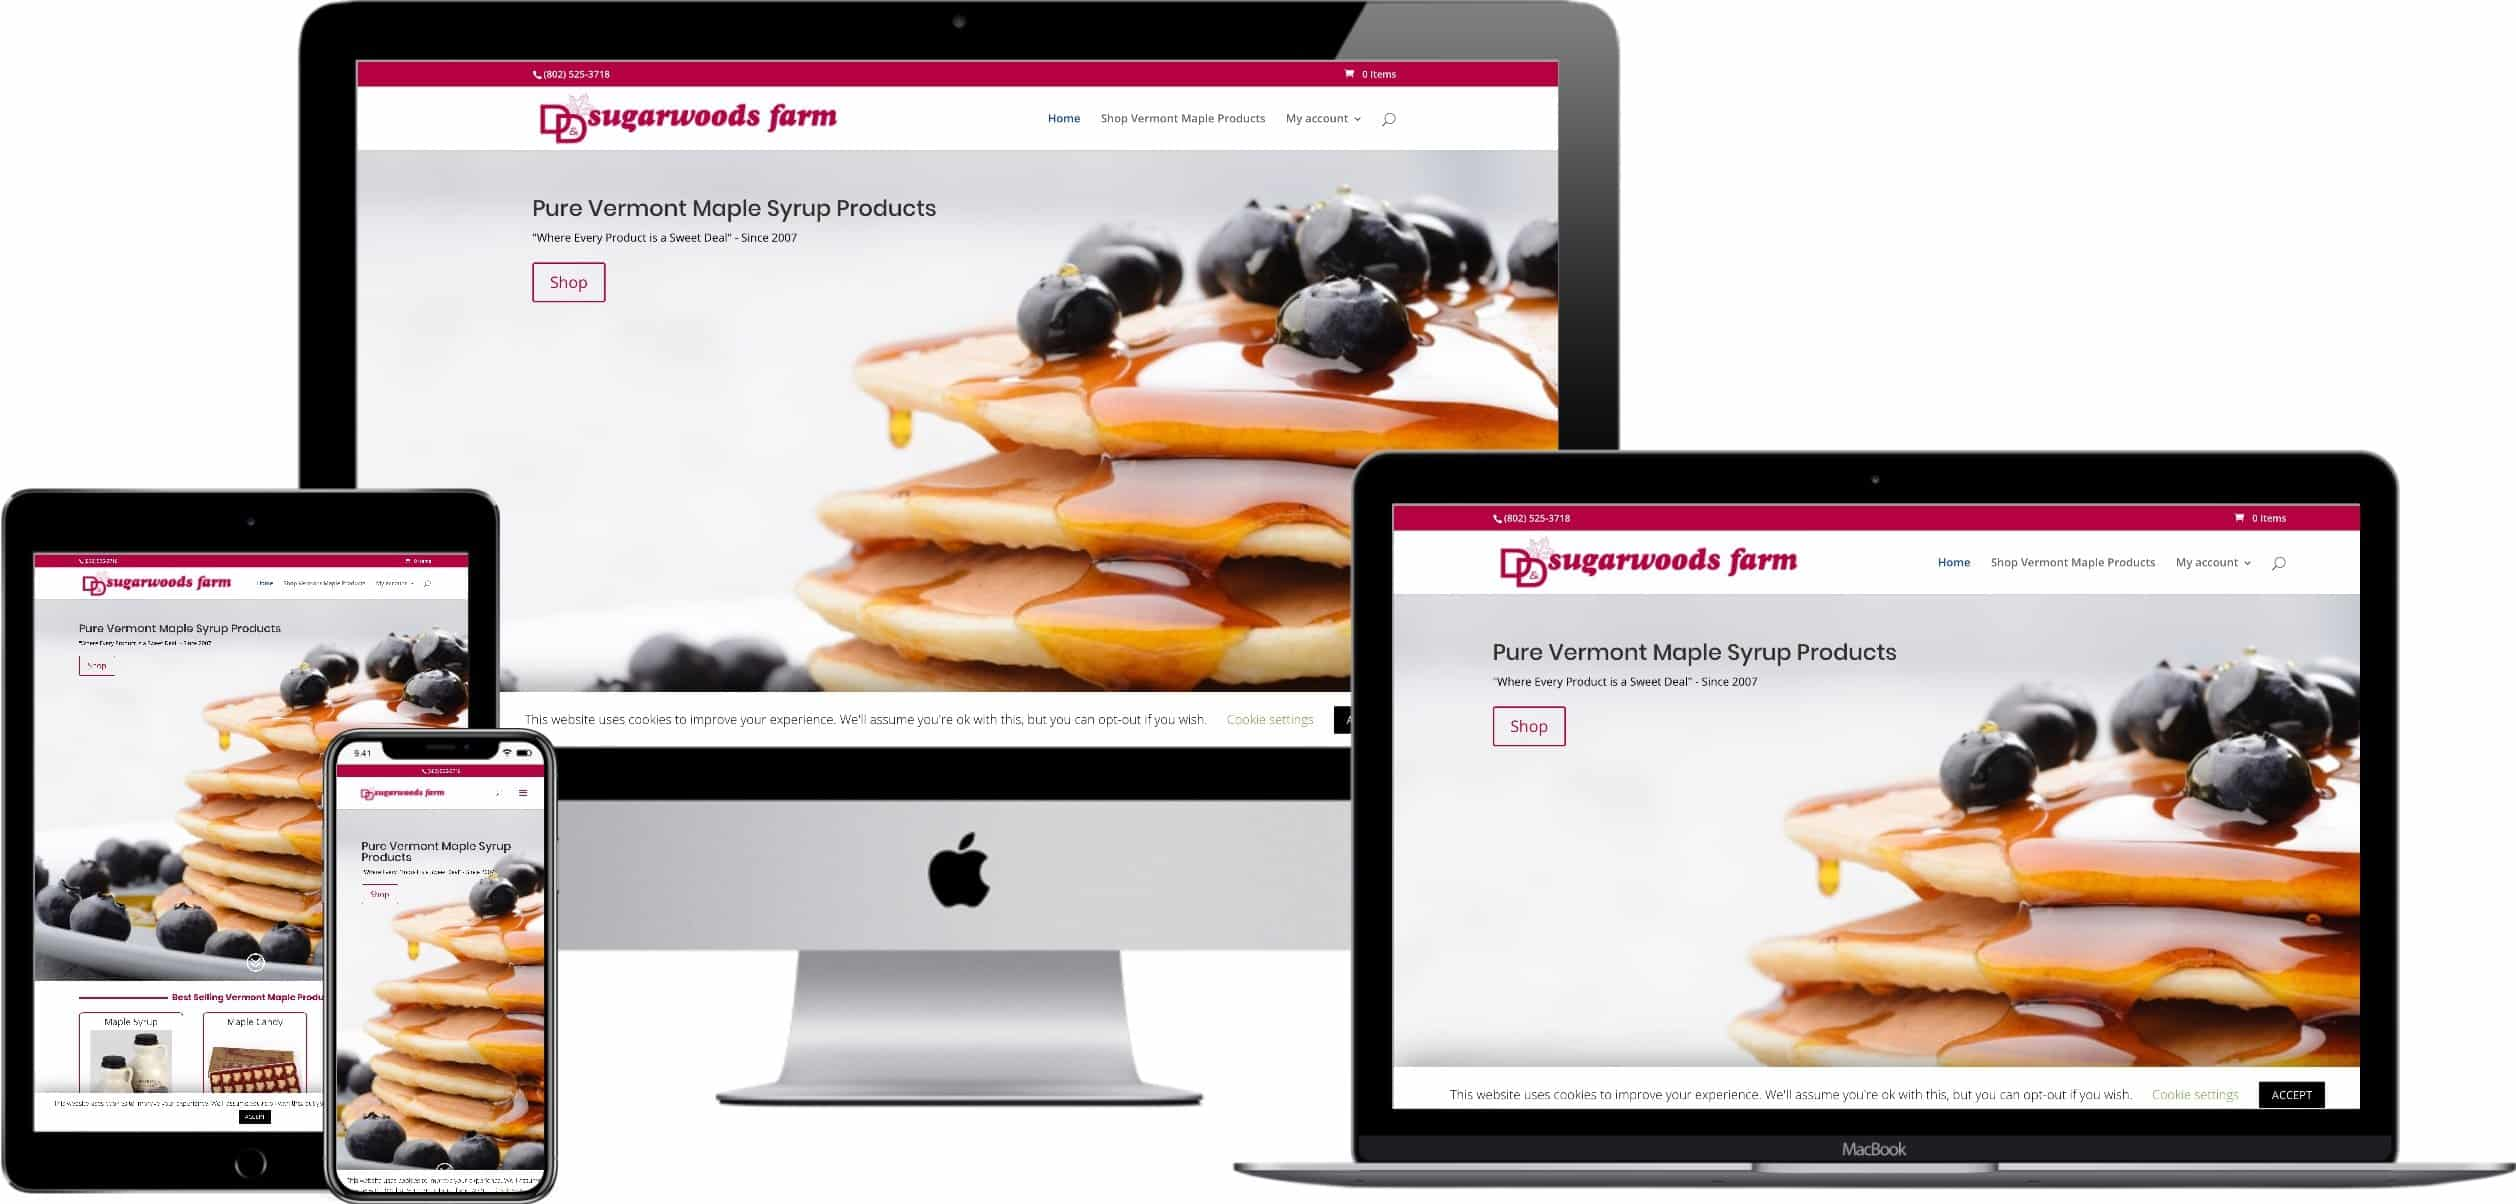 Responsive Web Design - D&D Sugarwoods Farm